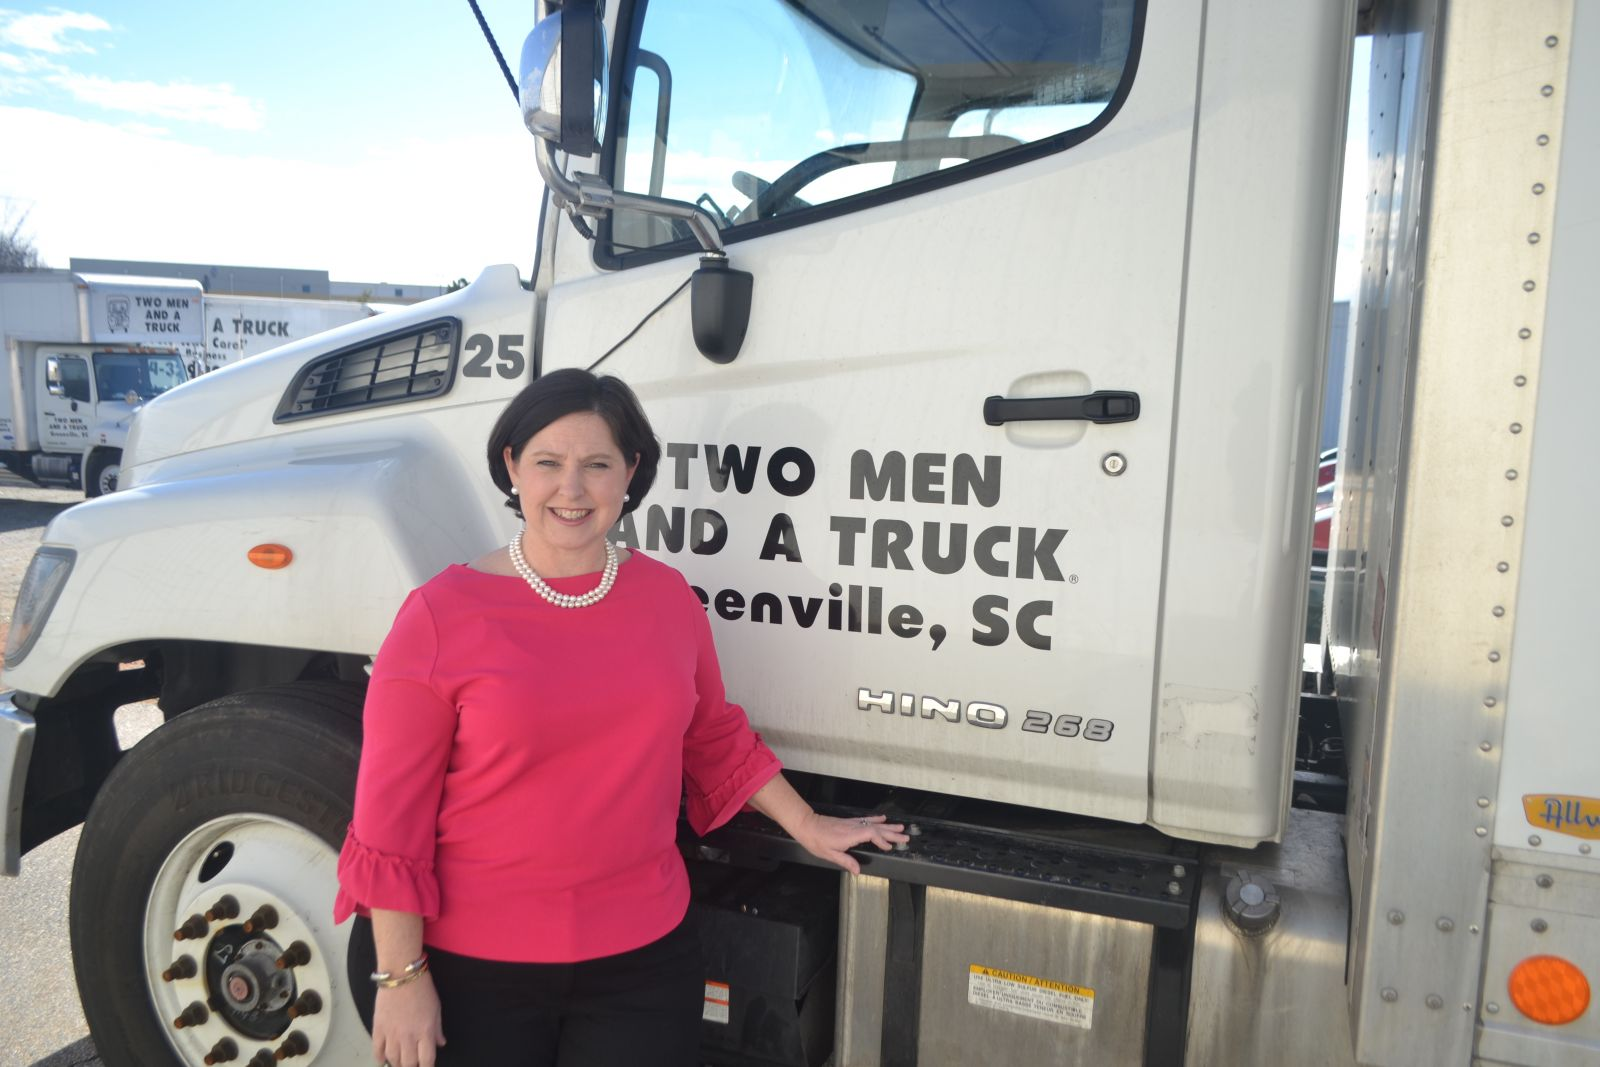 Rebecca Feldman owns Two Men and a Truck in Greenville. (Photo/Teresa Cutlip)